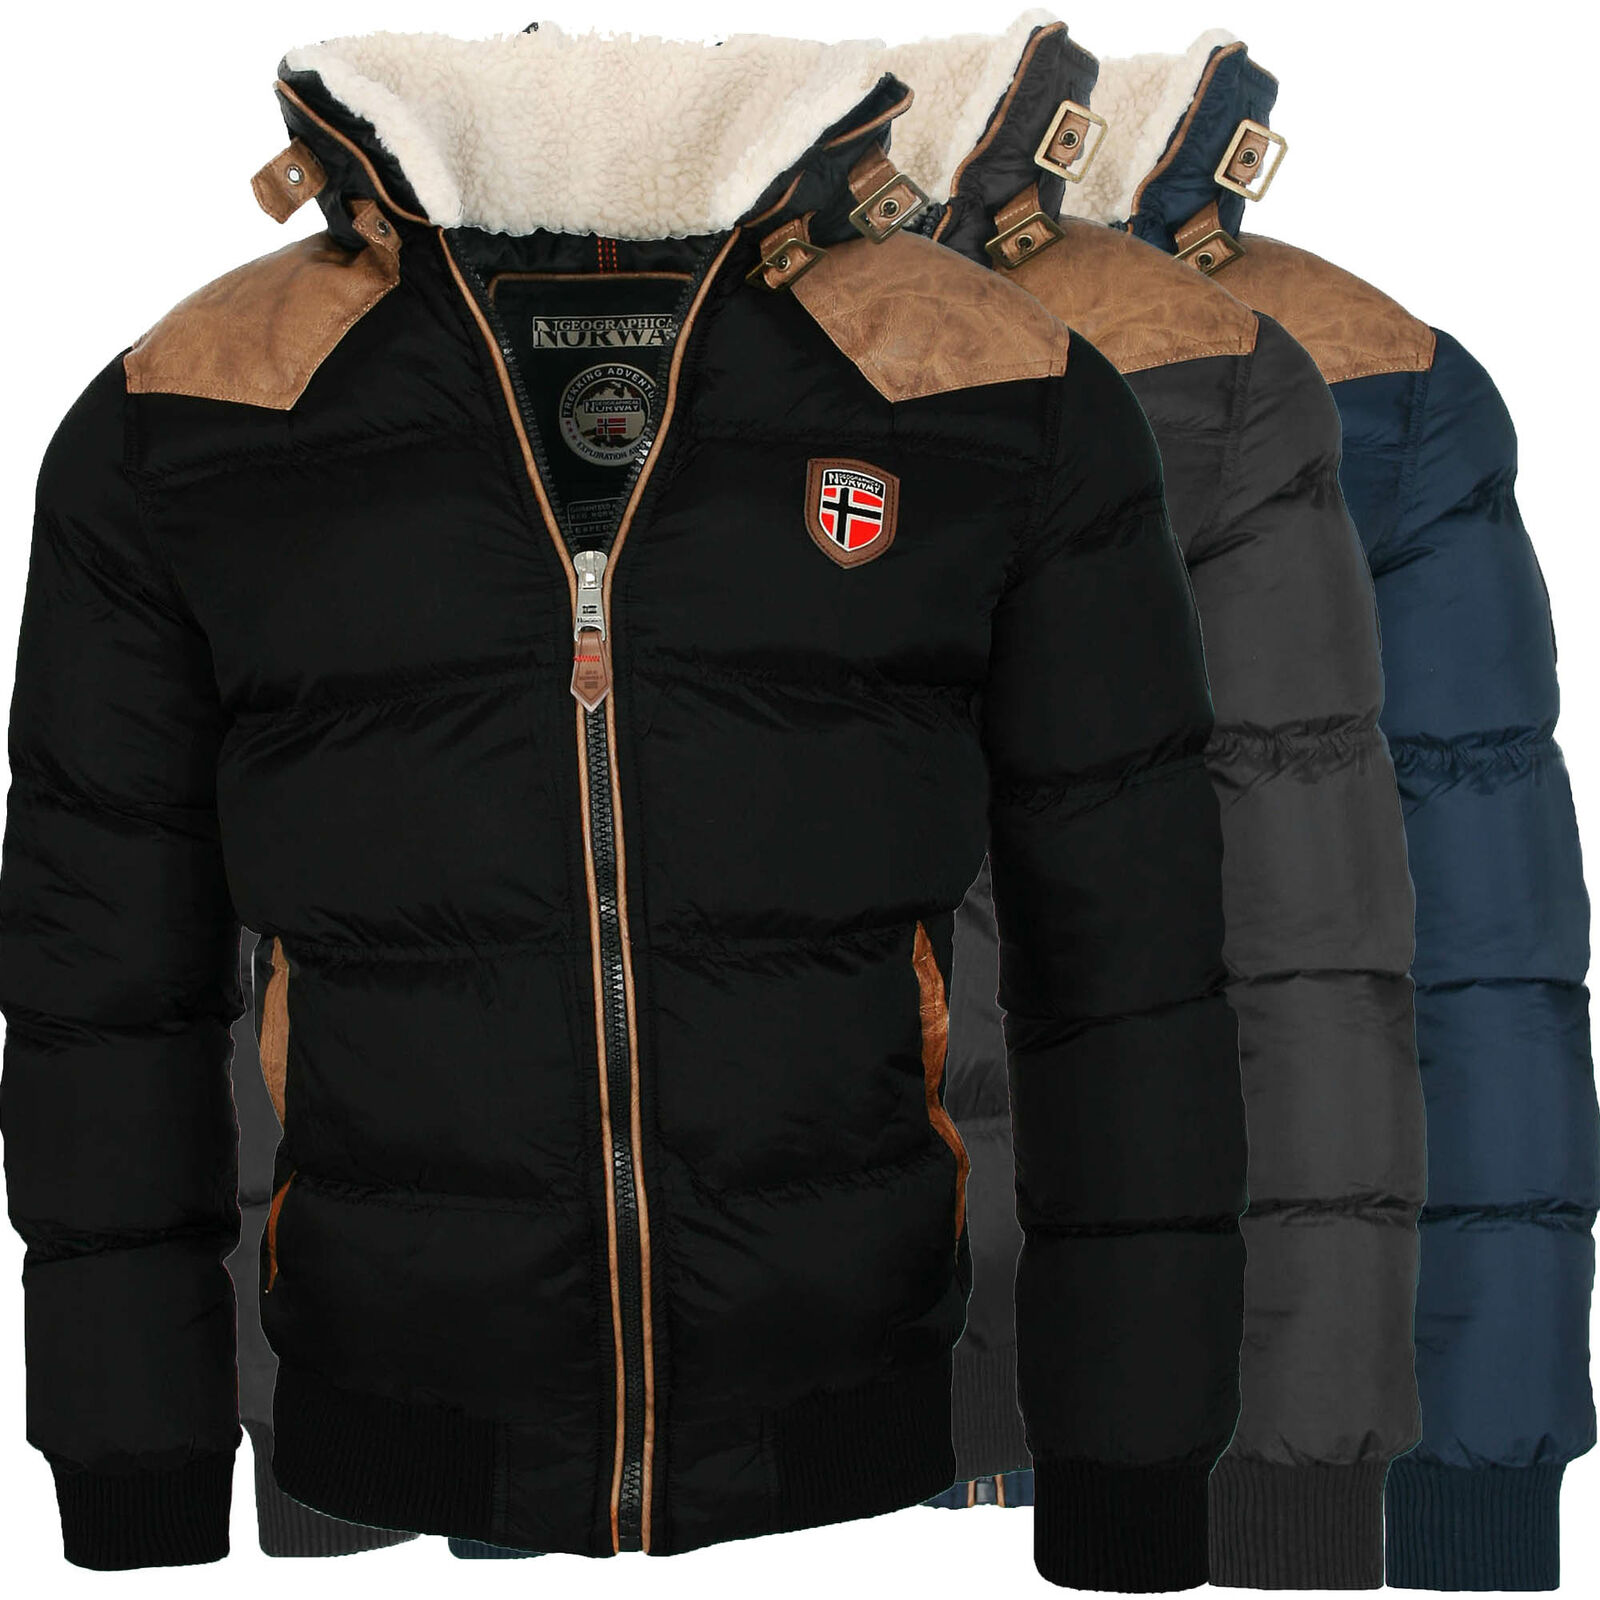 geographical norway warme designer herren winter stepp jacke winterjacke neu eur 74 90. Black Bedroom Furniture Sets. Home Design Ideas